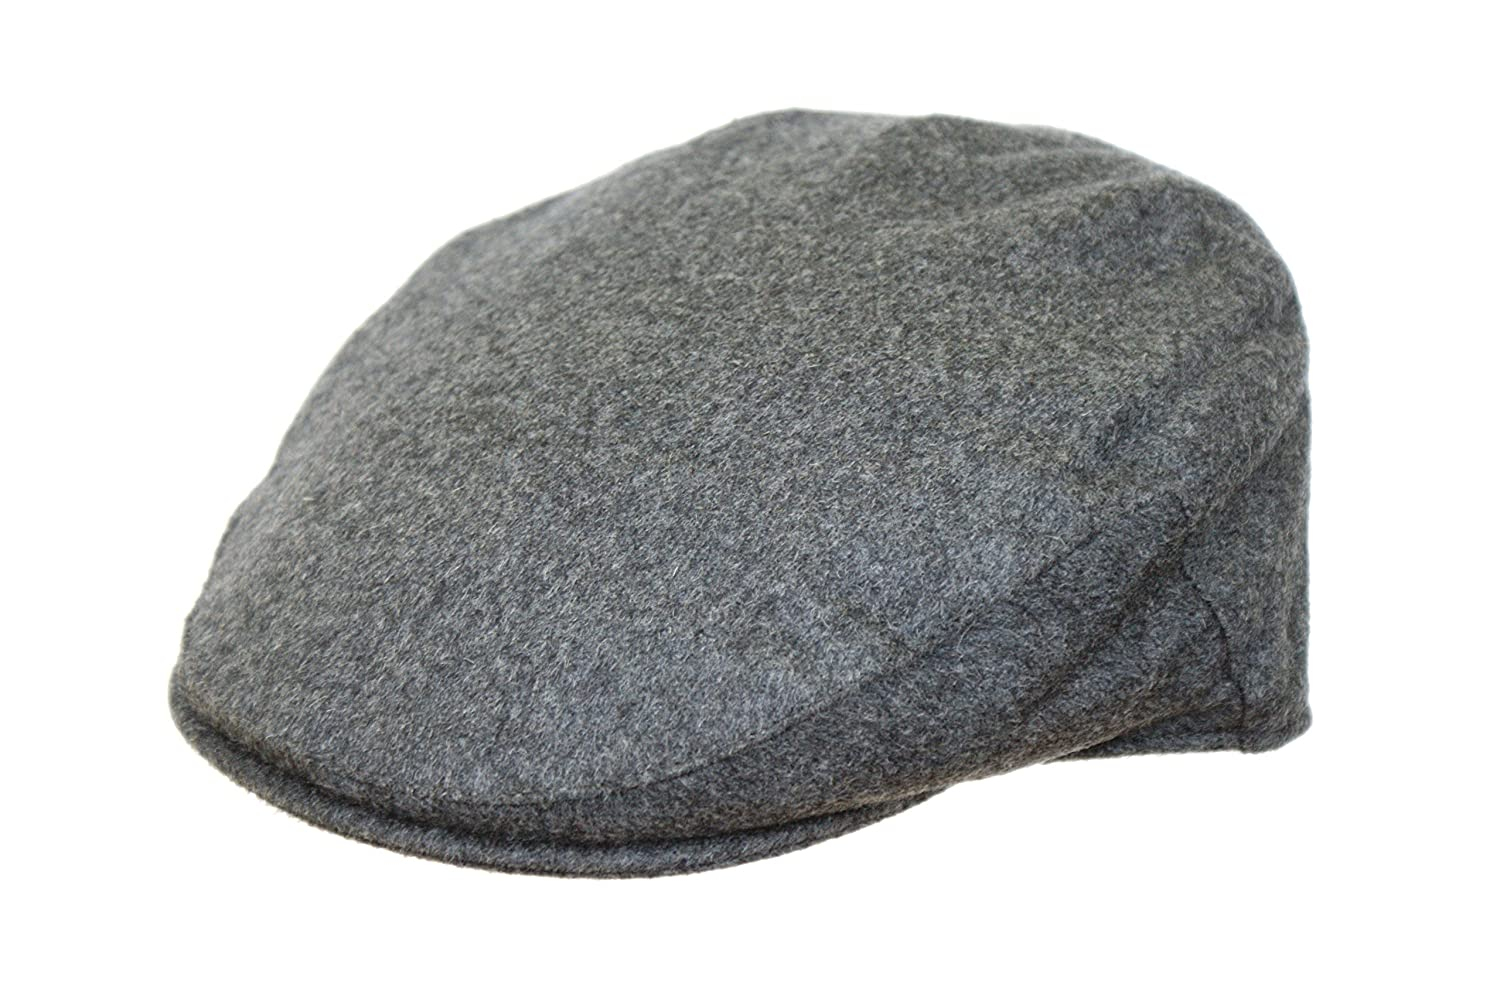 682207ae4a8 The Hat Outlet Men s Grey 100% Cashmere Flat Cap  Amazon.co.uk  Clothing